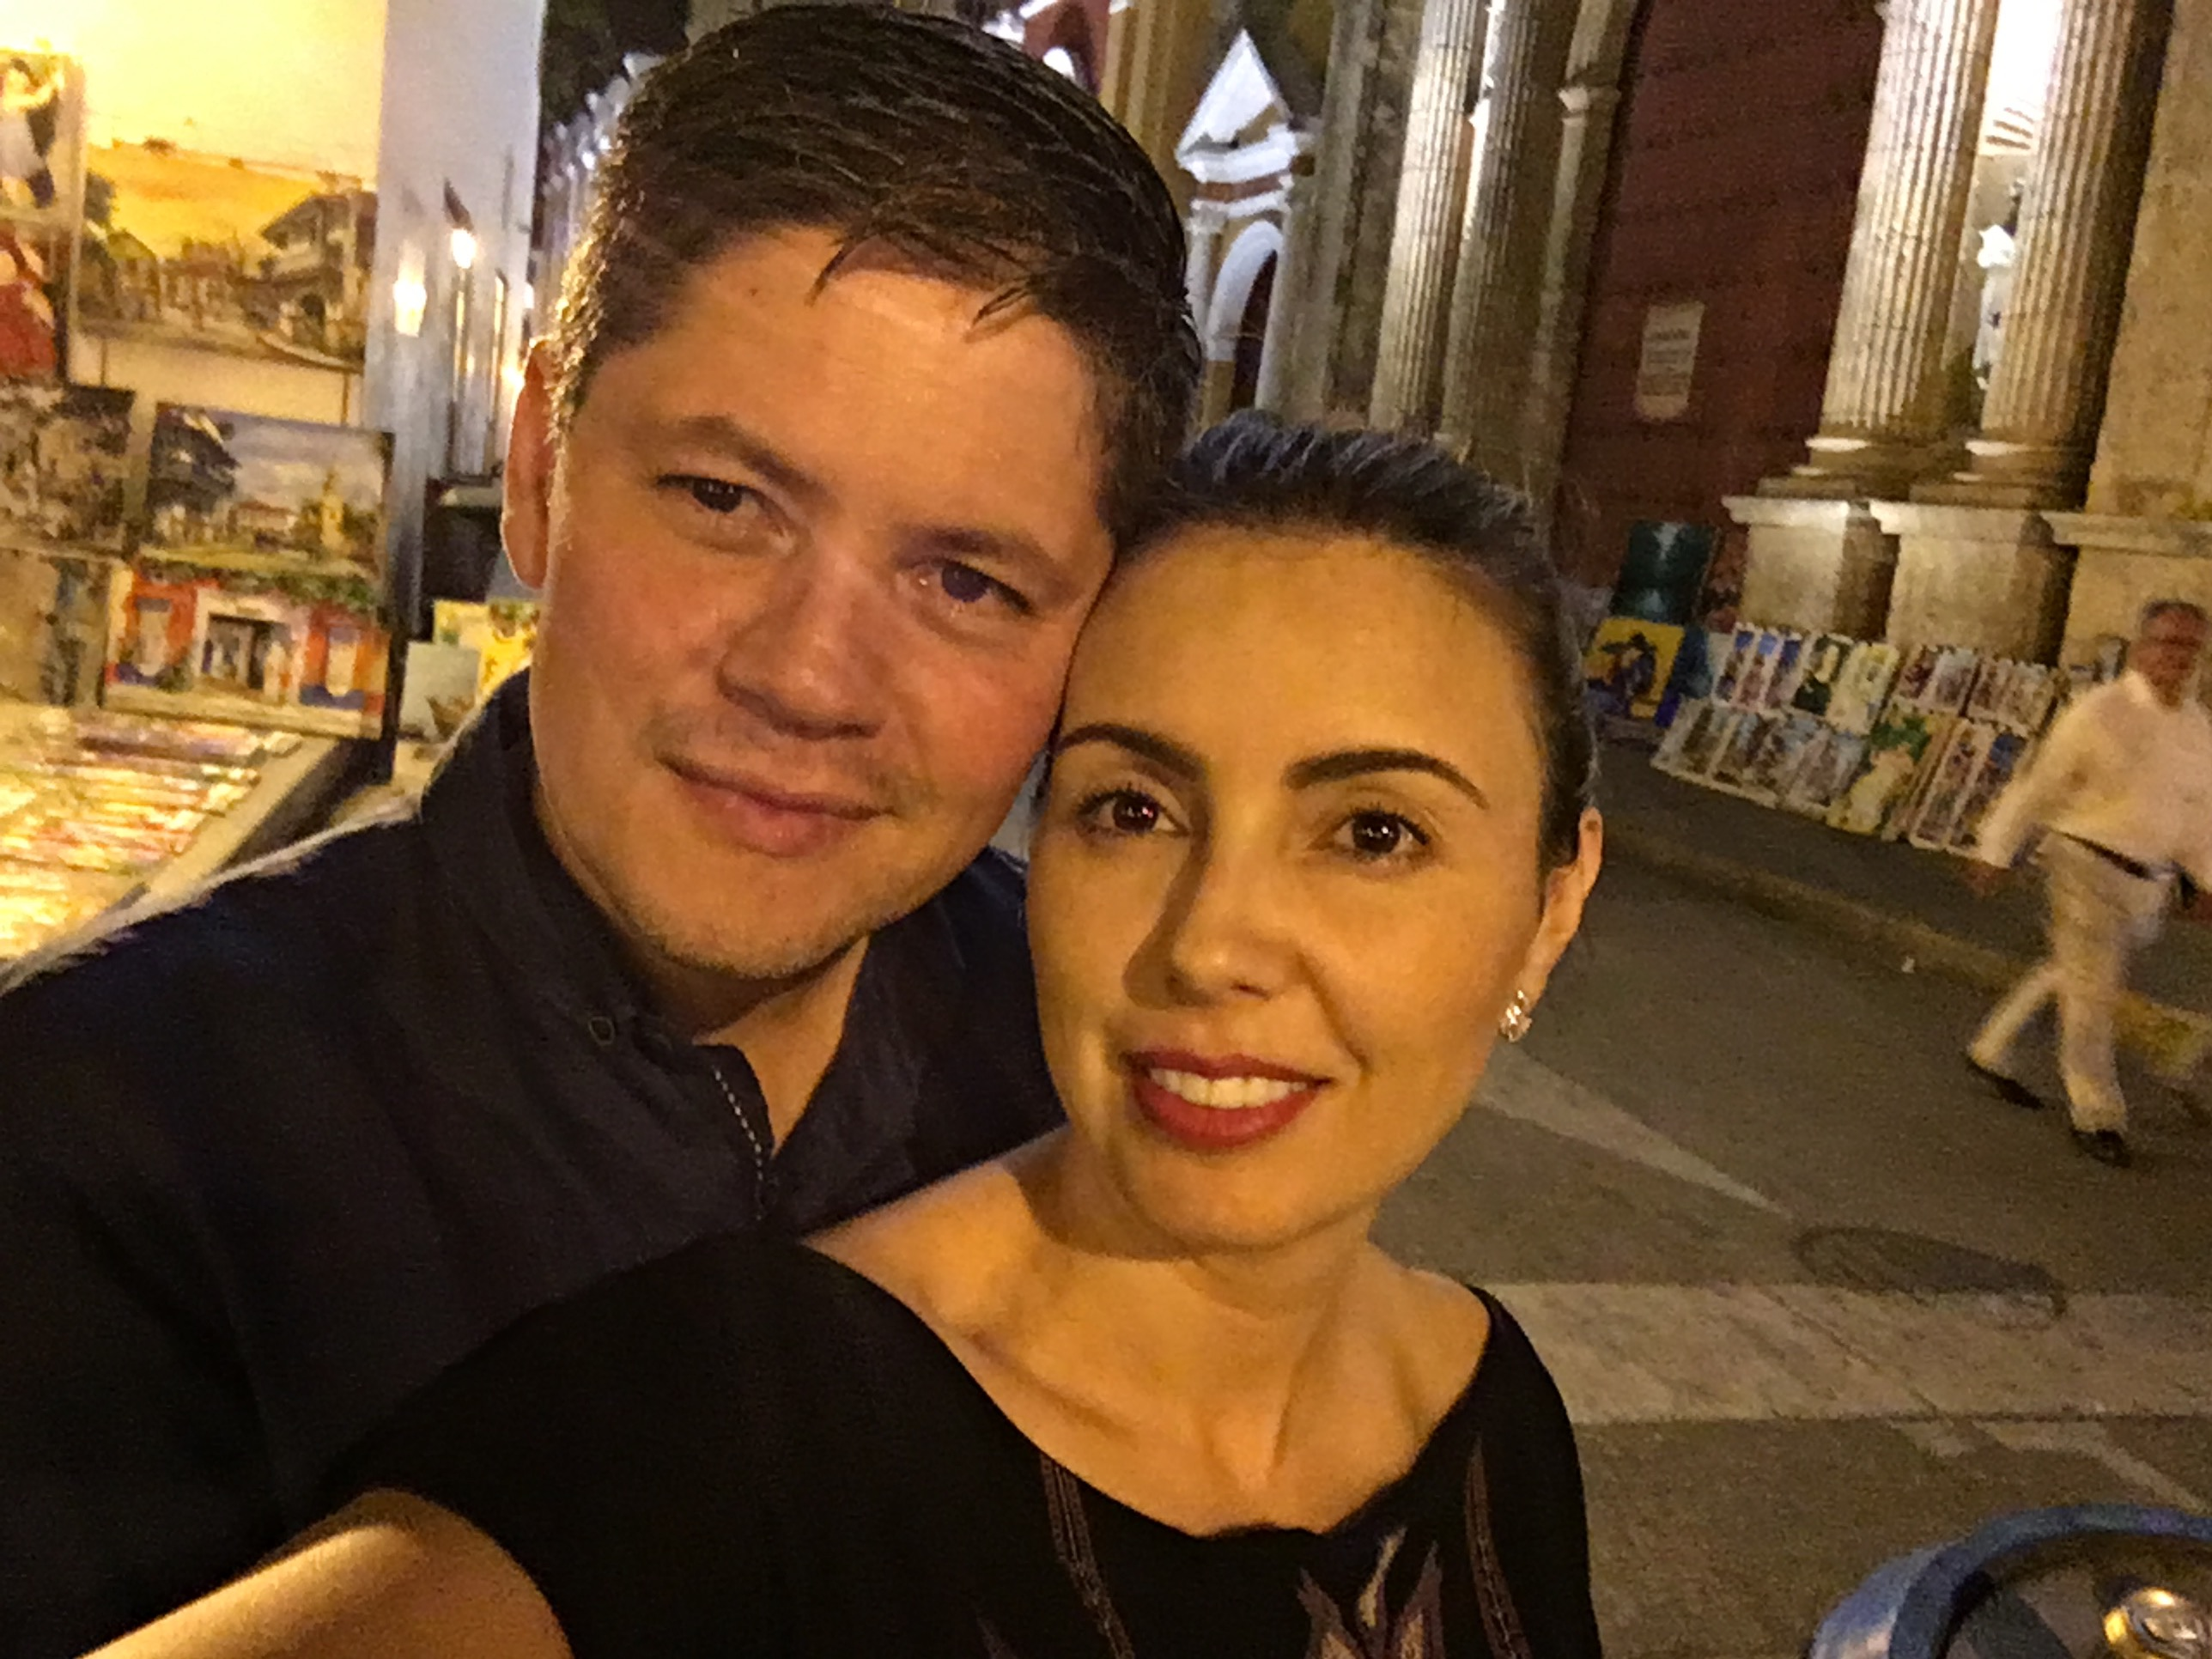 us in Cartagena, Colombia. Old City